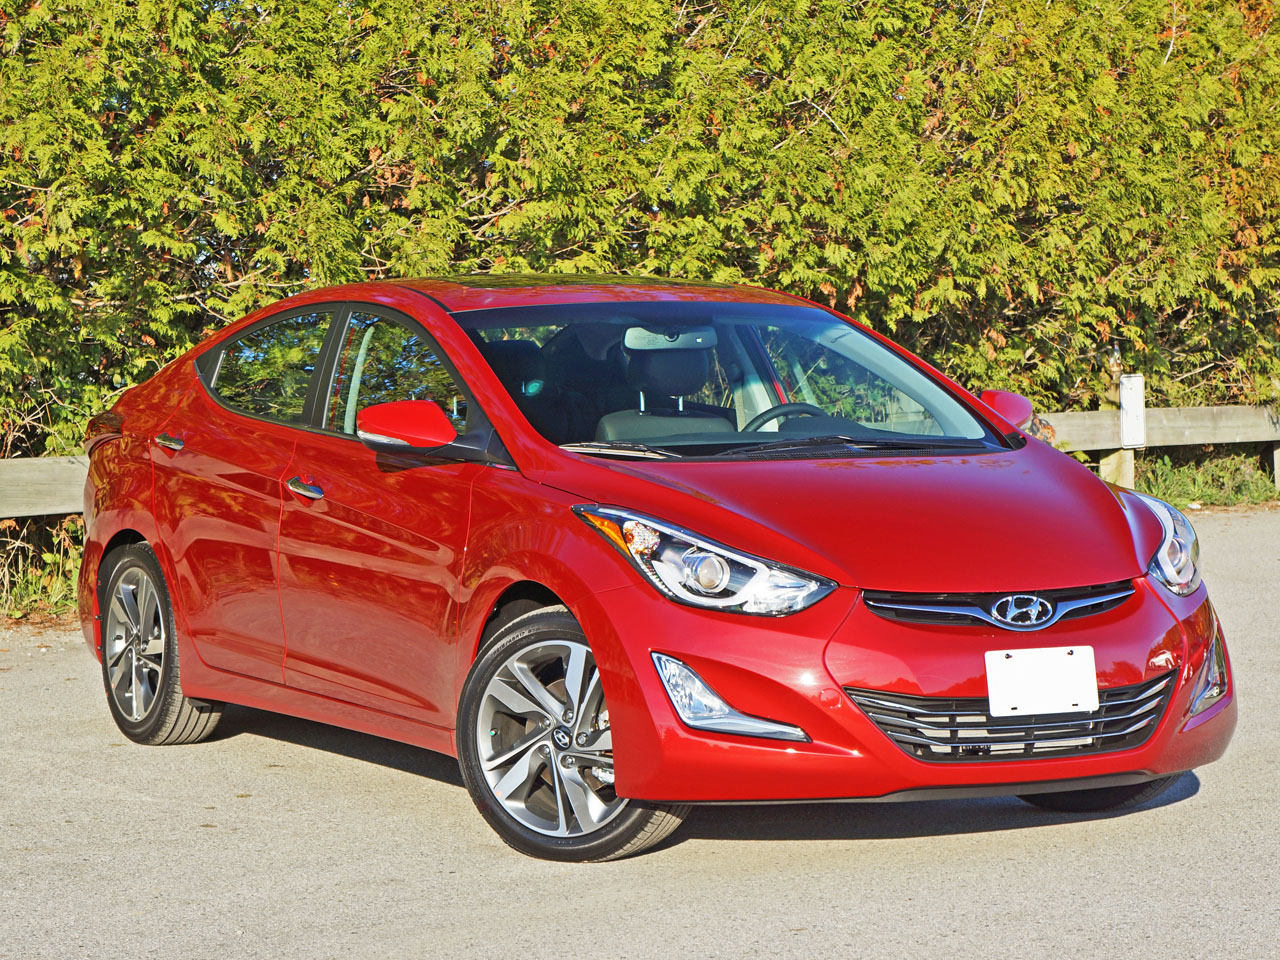 2016 hyundai elantra sedan limited road test review carcostcanada. Black Bedroom Furniture Sets. Home Design Ideas